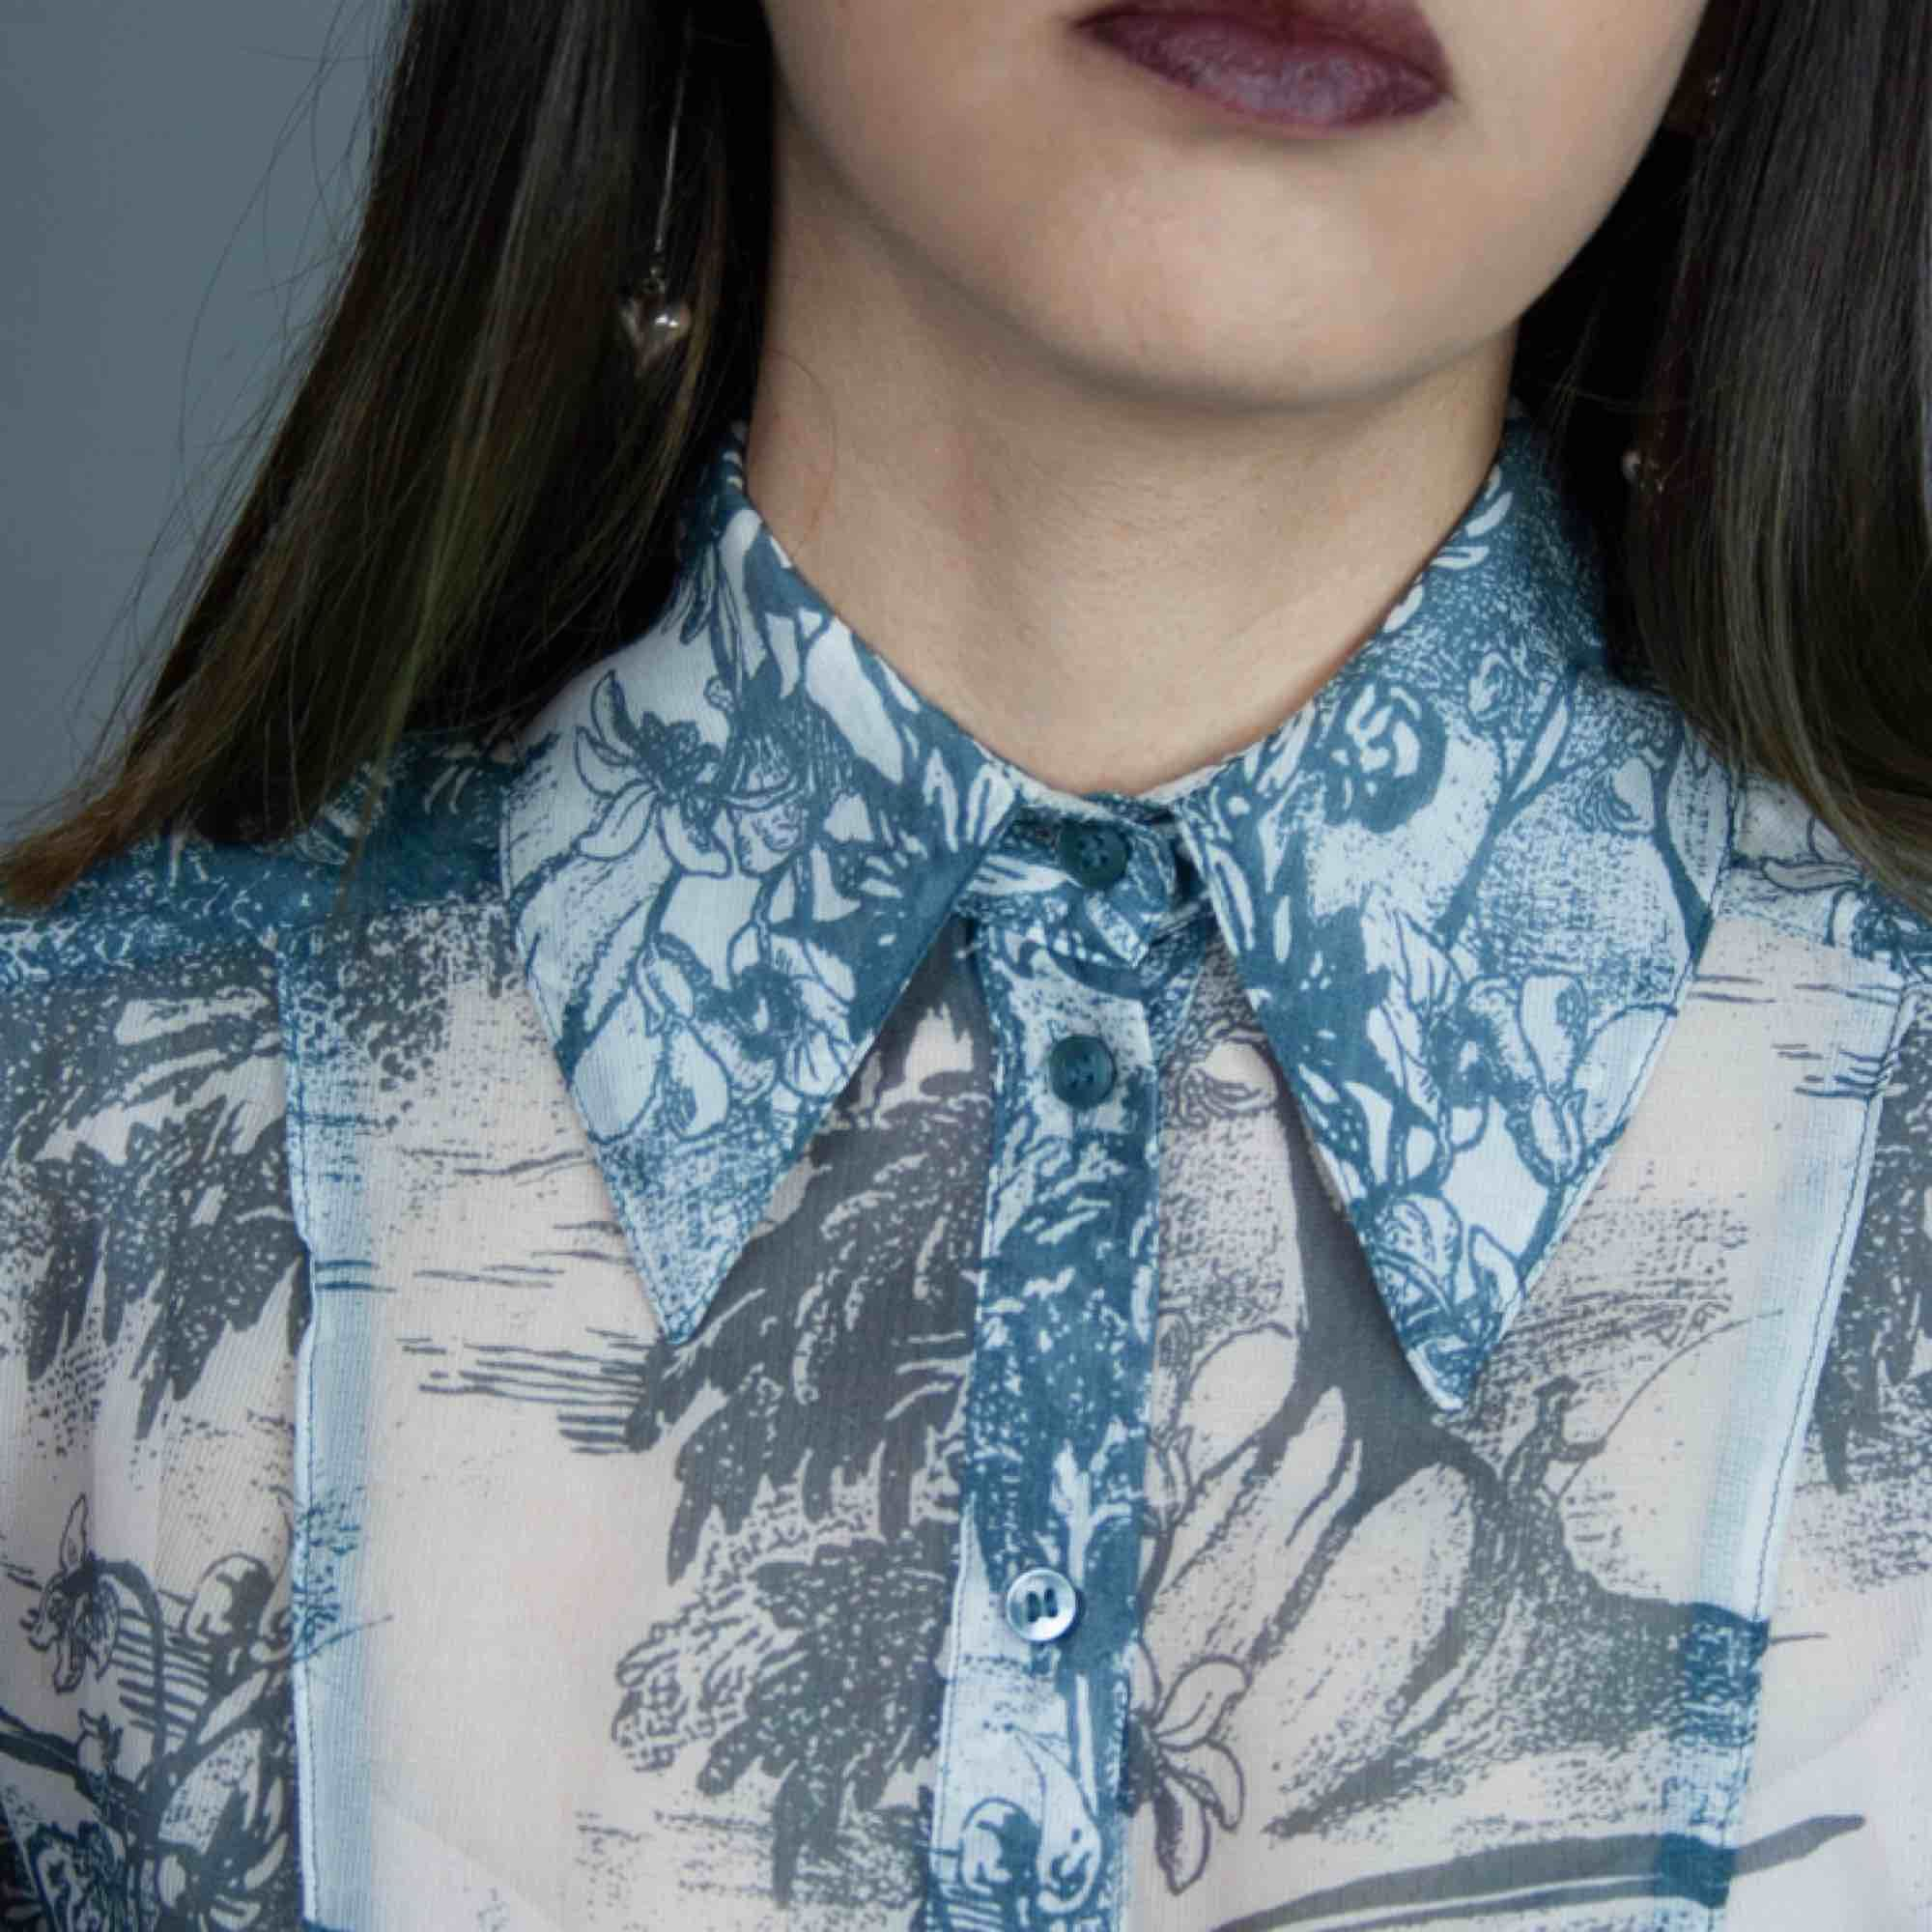 H&M Conscious Exclusive SS18 silk mix floral landscape patterned shirt in grey blue size XS SIZE Label: EUR 34, fits best XS Model: 165/XS Measurements (flat): Length: 56 cm pit to pit: 44 cm Free shipping. Skjortor.